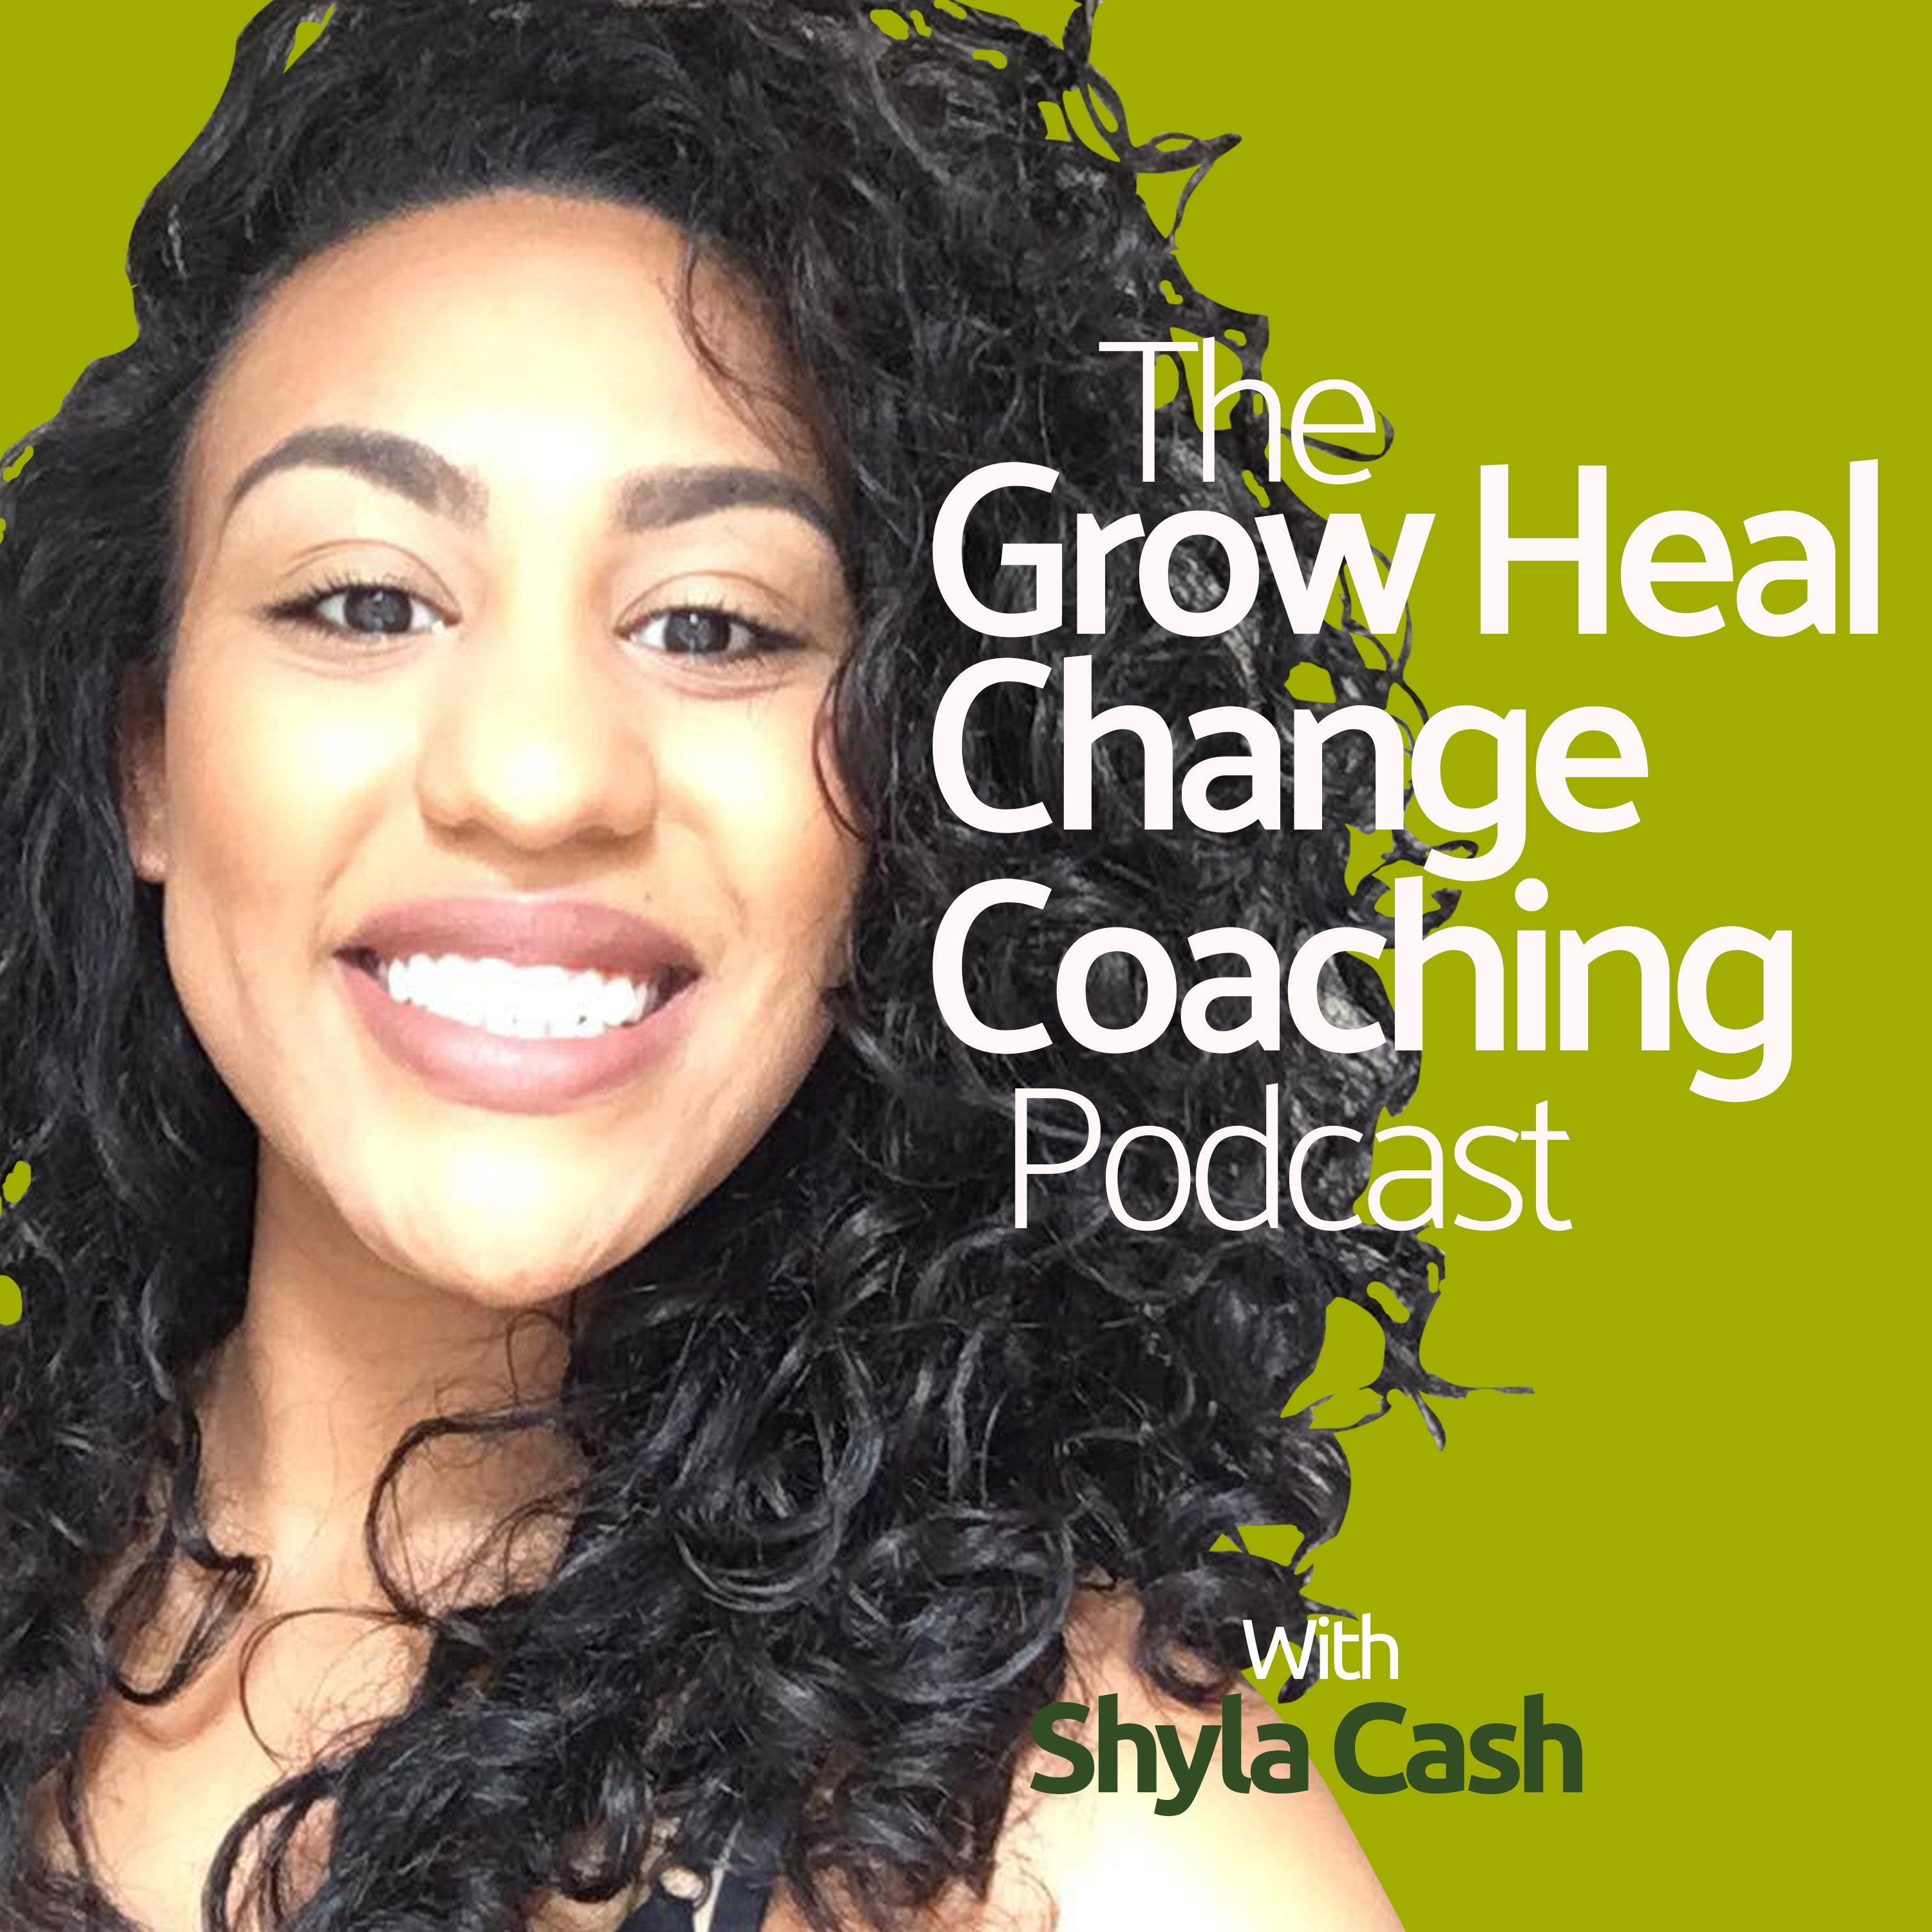 The Grow Heal Change Coaching Podcast show art